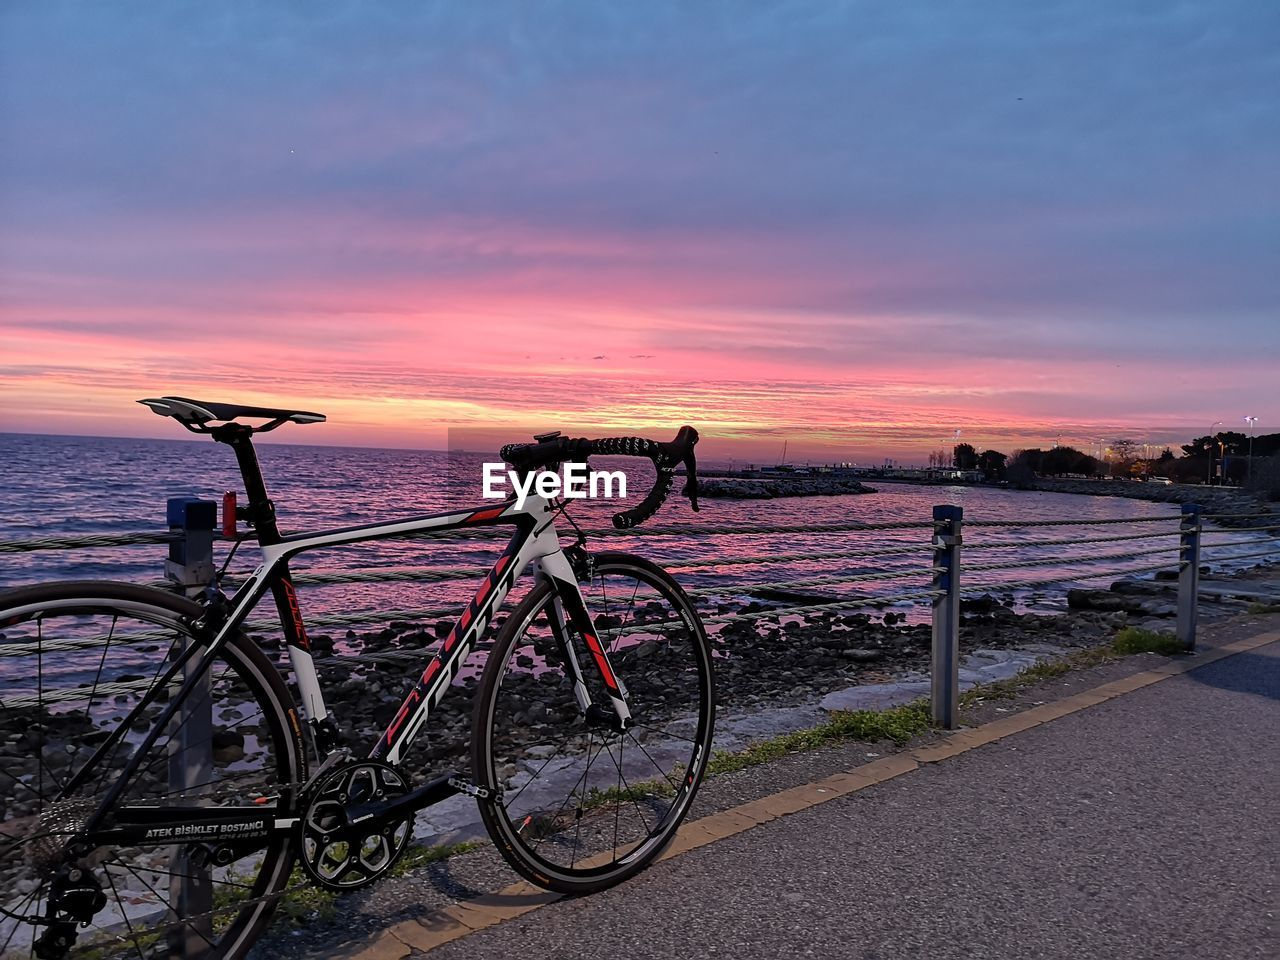 sunset, sky, bicycle, transportation, land vehicle, mode of transportation, cloud - sky, water, beauty in nature, sea, nature, stationary, scenics - nature, railing, no people, orange color, tranquil scene, tranquility, travel, outdoors, purple